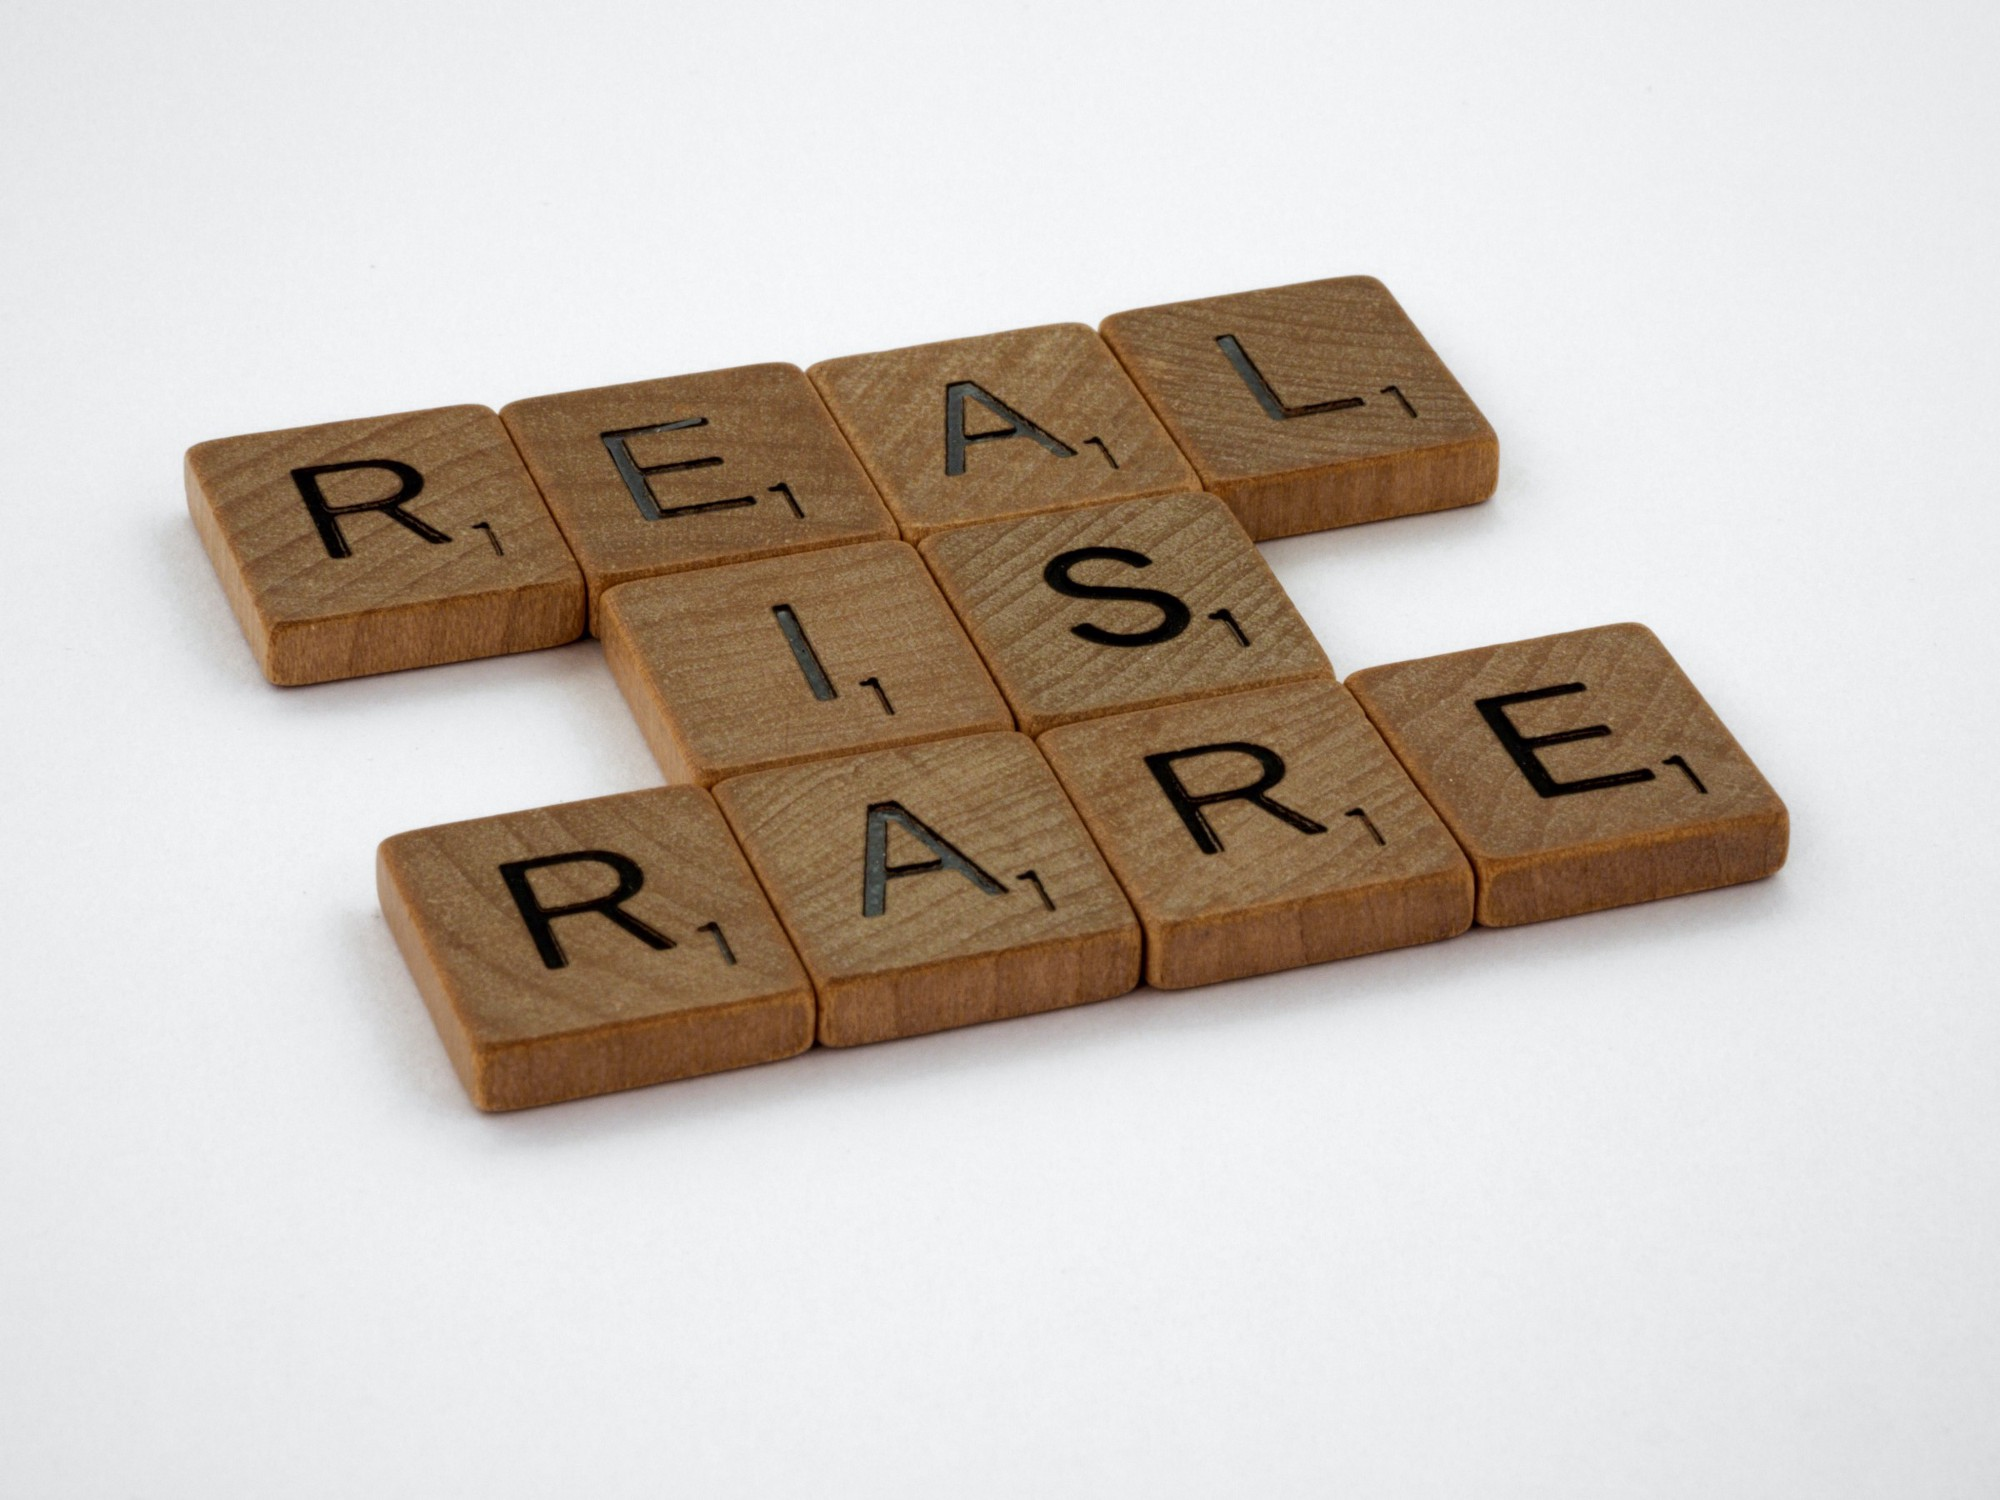 brown Scrabble tiles spelling out 'real is rare'